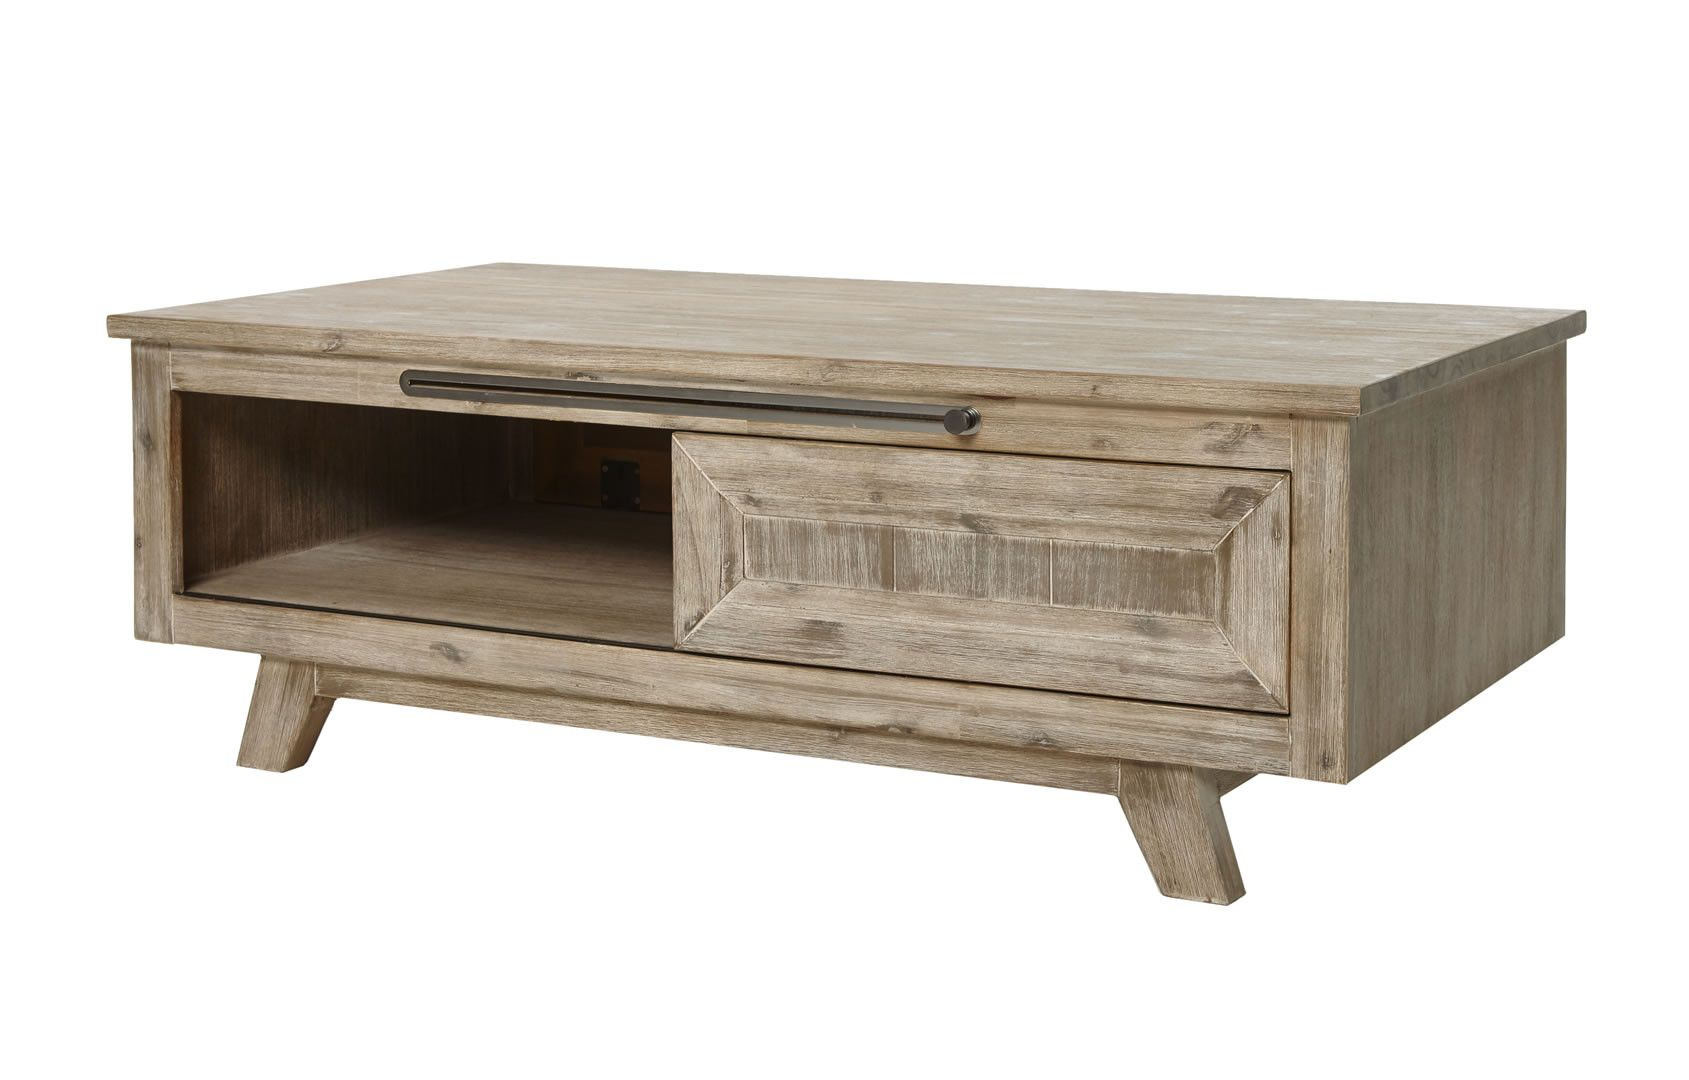 Charmant ... Table Basse Bois Massif Style Rustique Chic Krabi. Soldes.   65%. Zoom